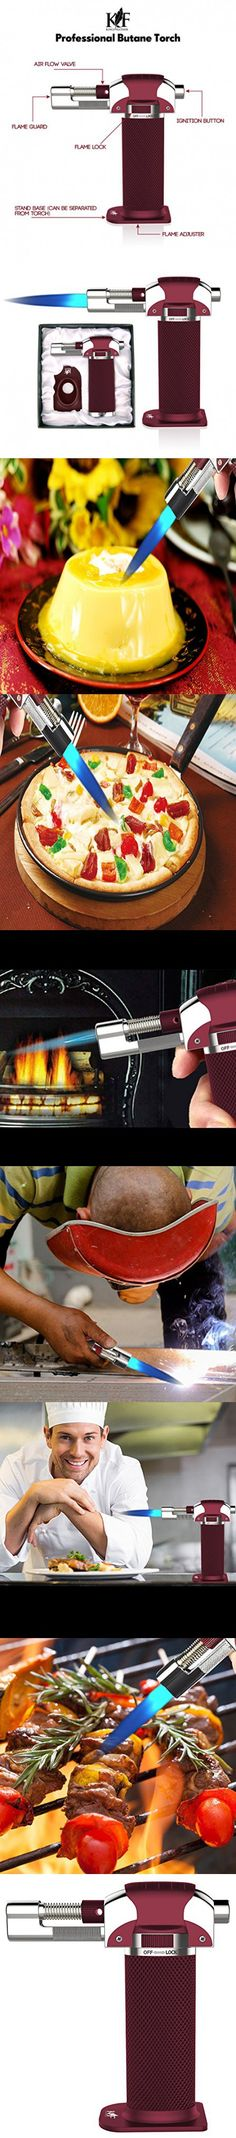 Culinary Torch - Micro Butane Torch - Best Creme Brulee Torch - Food Torch - Cooking Torch - Cooking Blow Torch - Butane Torch For Cooking and Blow Torch with Green Gas Flow (Butane Not Included)